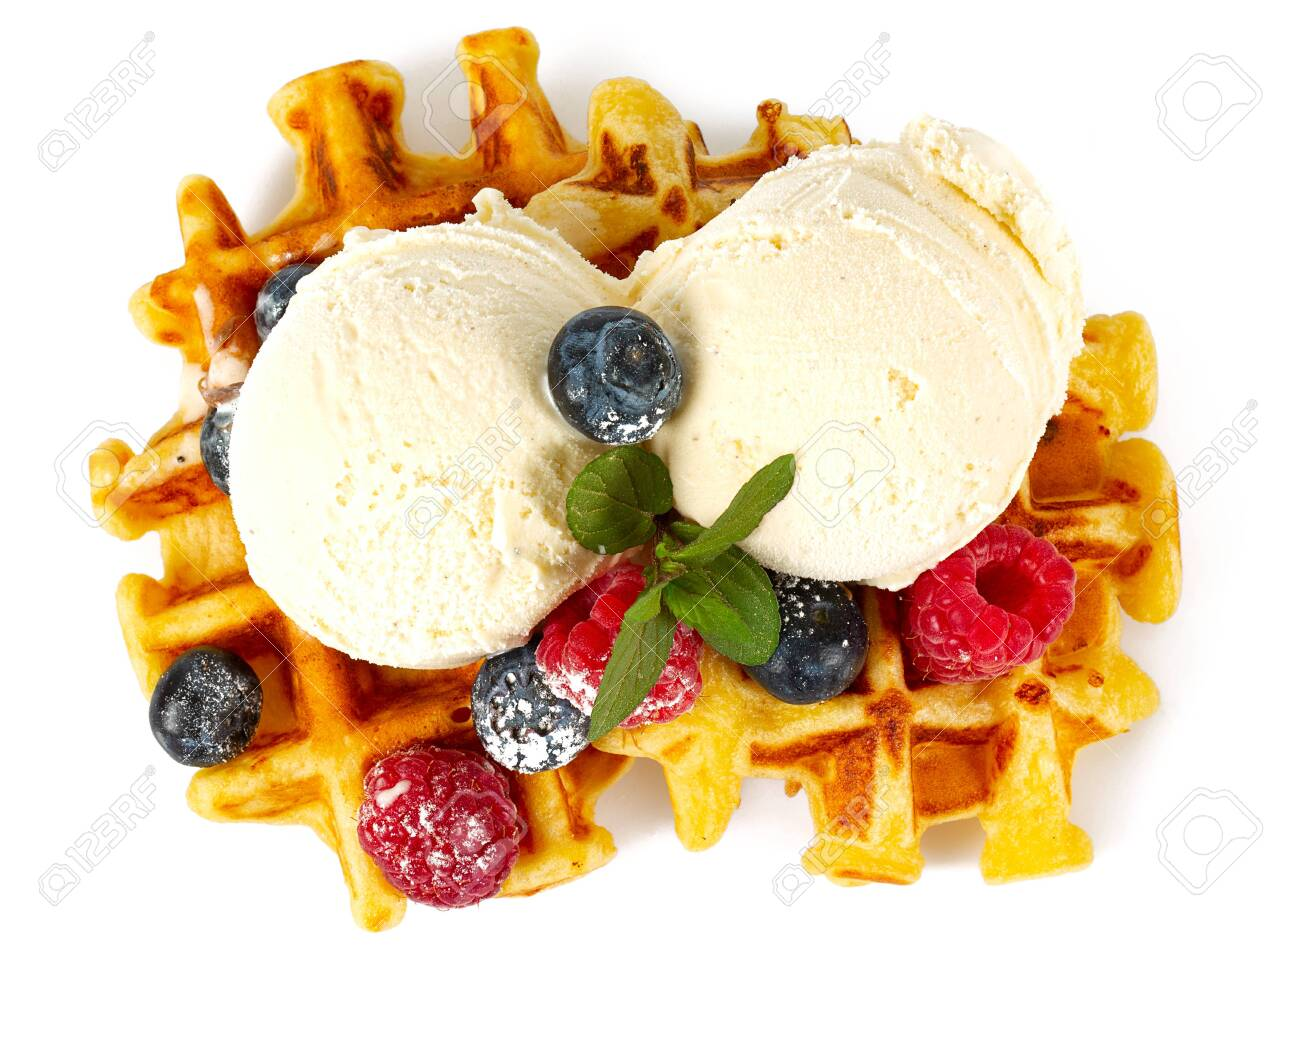 belgian waffles with ice cream and berries - 125216950